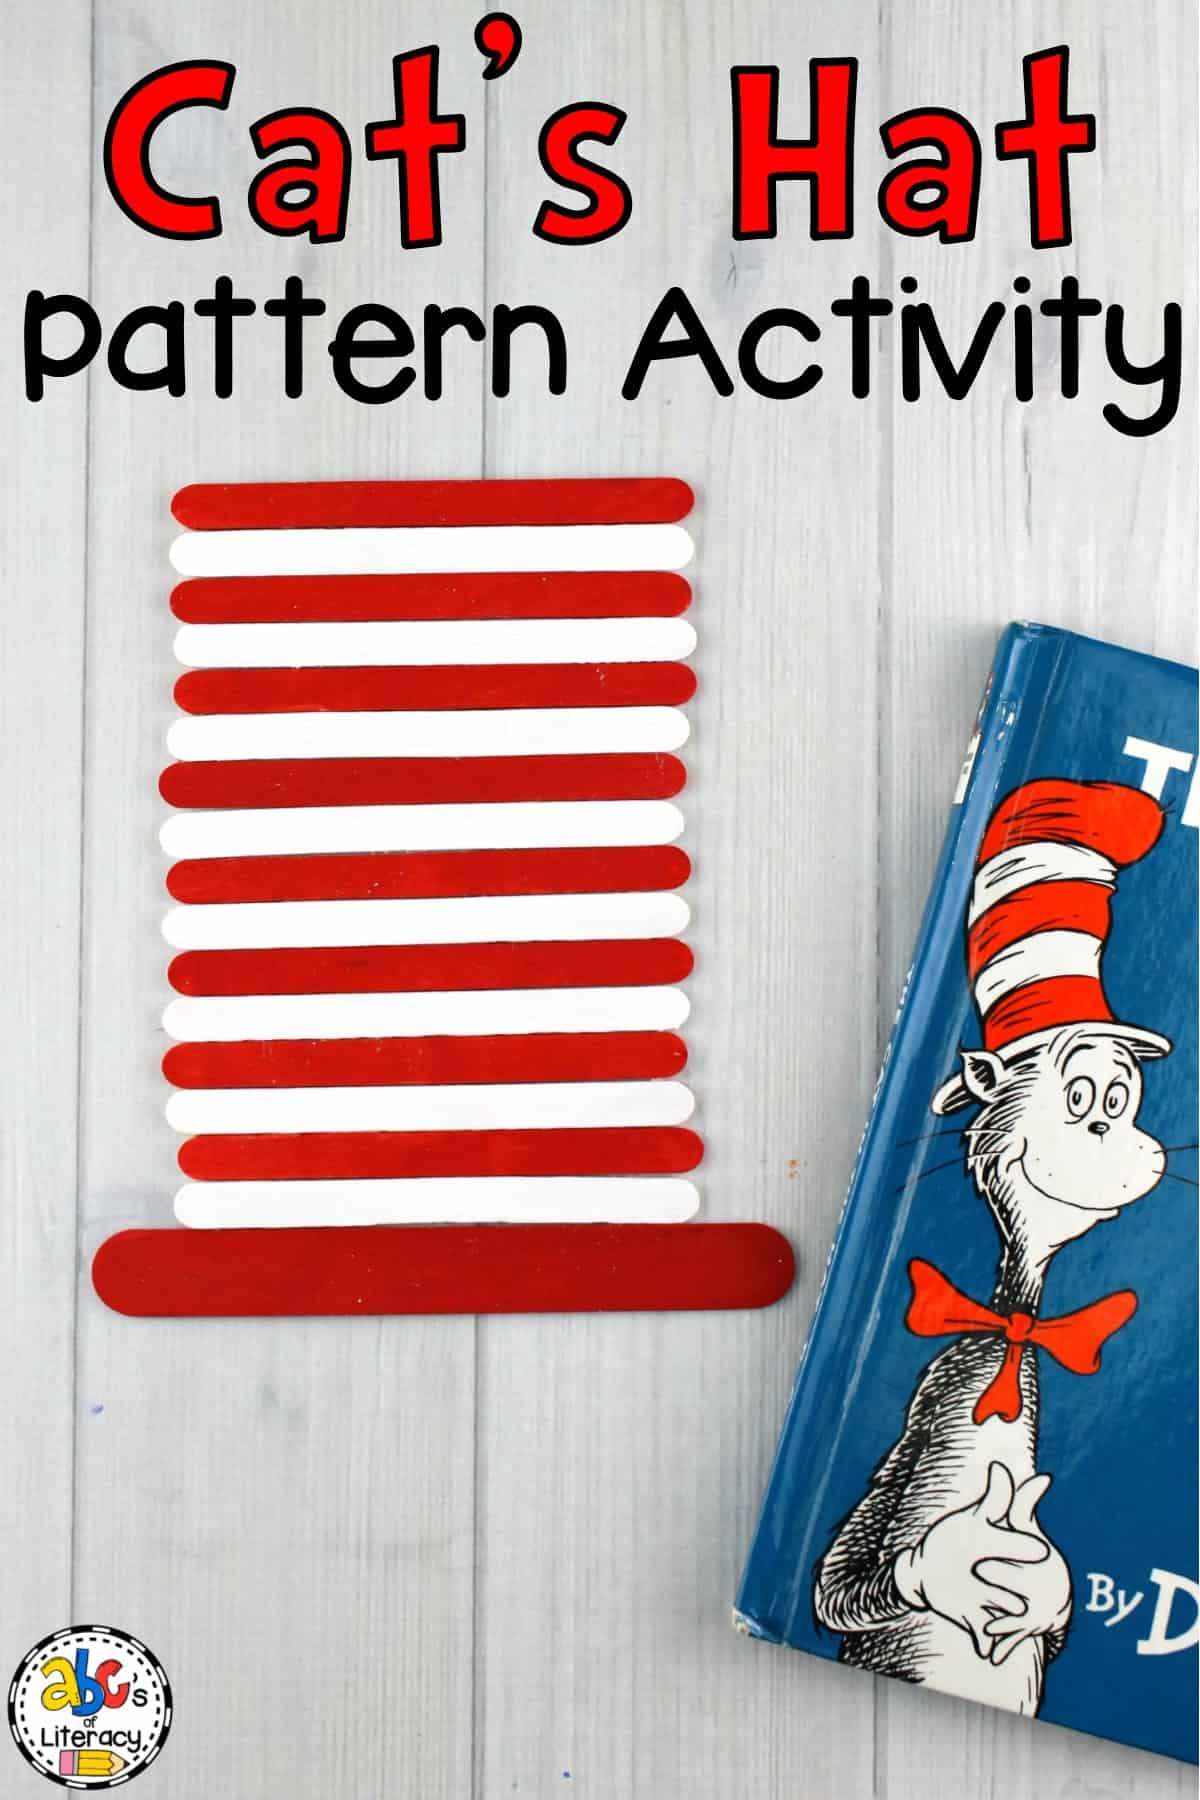 Cat's Hat Pattern Activity